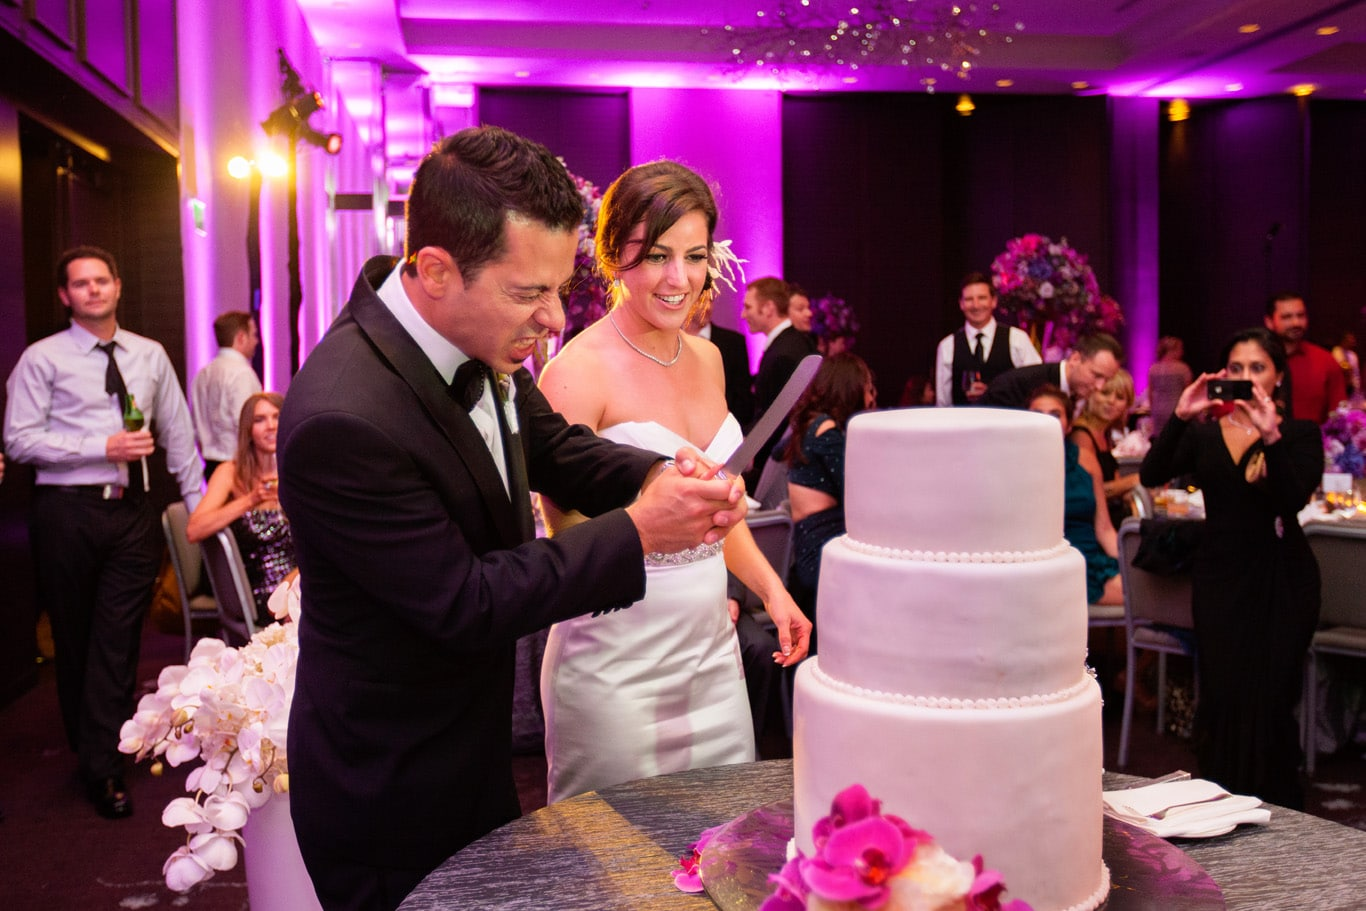 St Regis San Francisco Wedding Cake